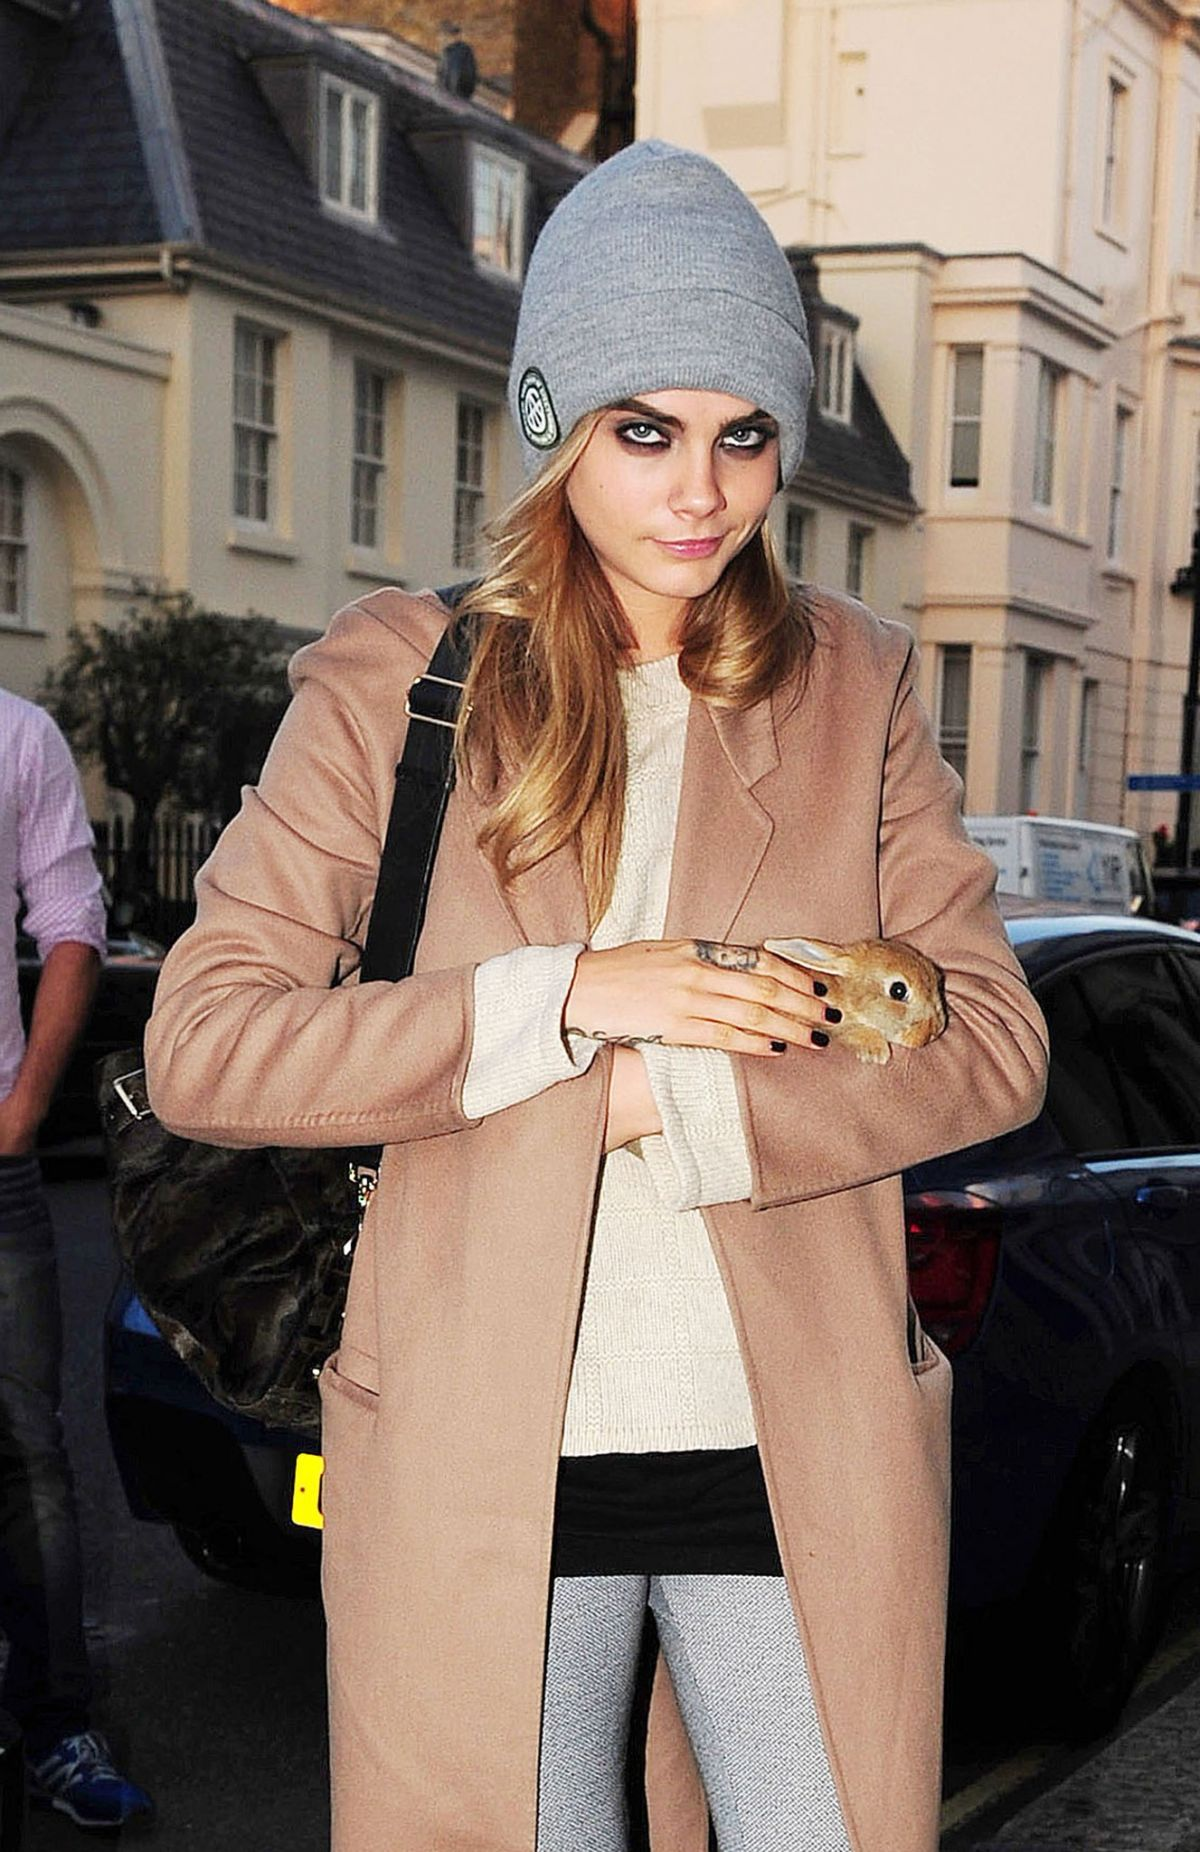 Cara Delevingne Going Home With Her New Bunny In London